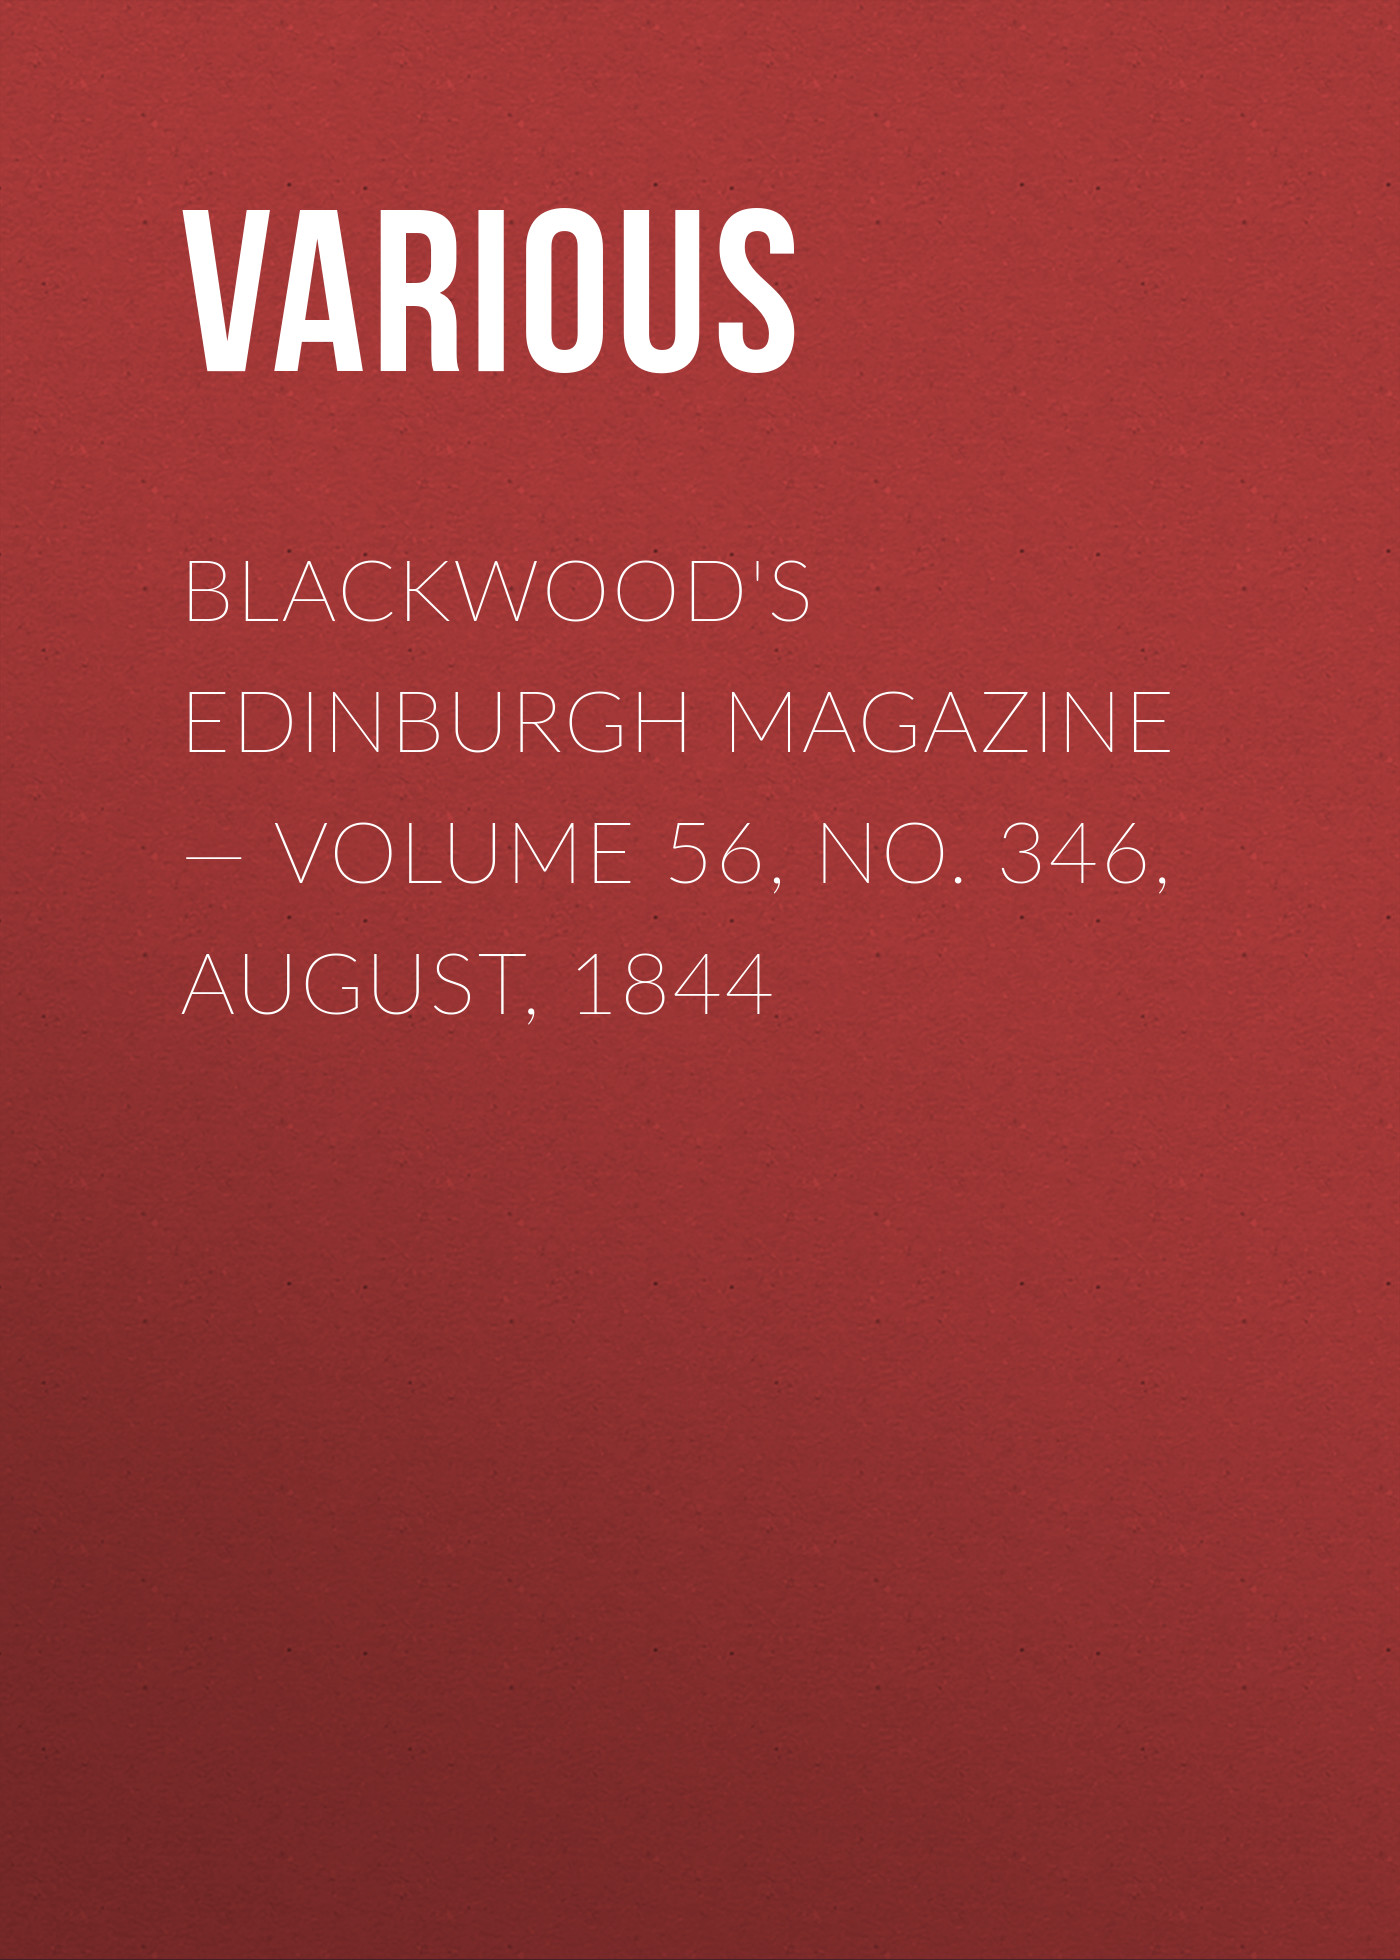 Blackwood's Edinburgh Magazine — Volume 56, No. 346, August, 1844